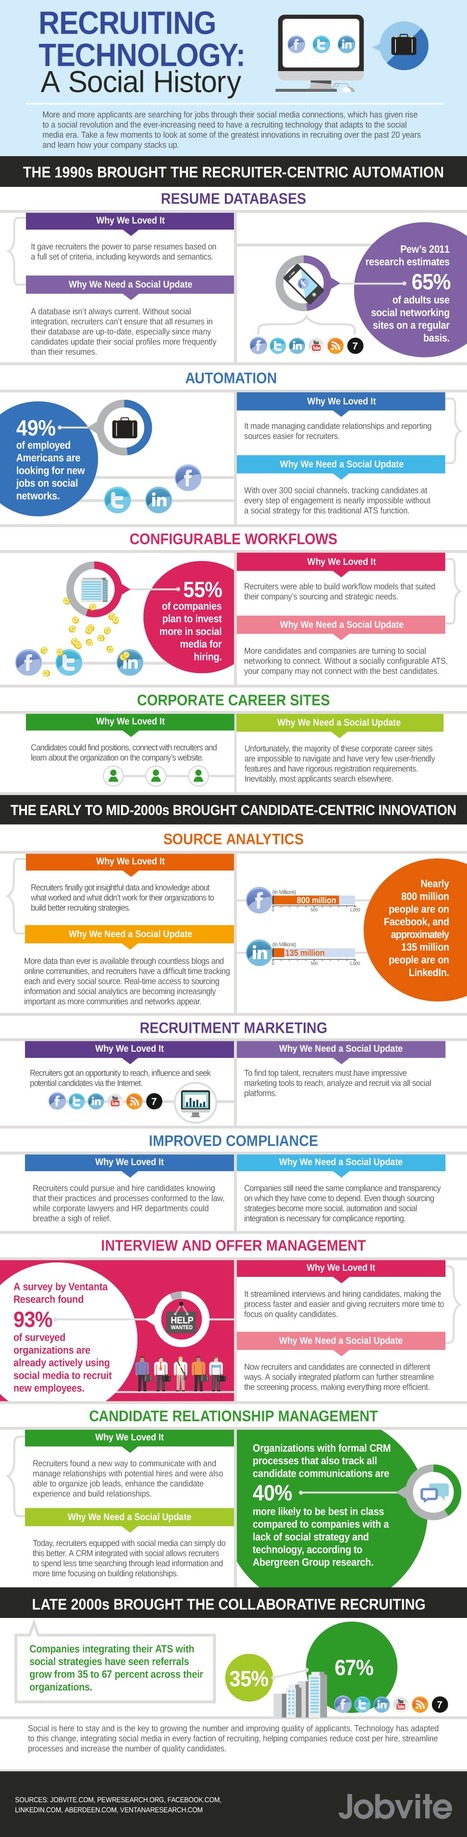 The History Of Social Recruiting Technology #Infographic | CareerOz | Scoop.it